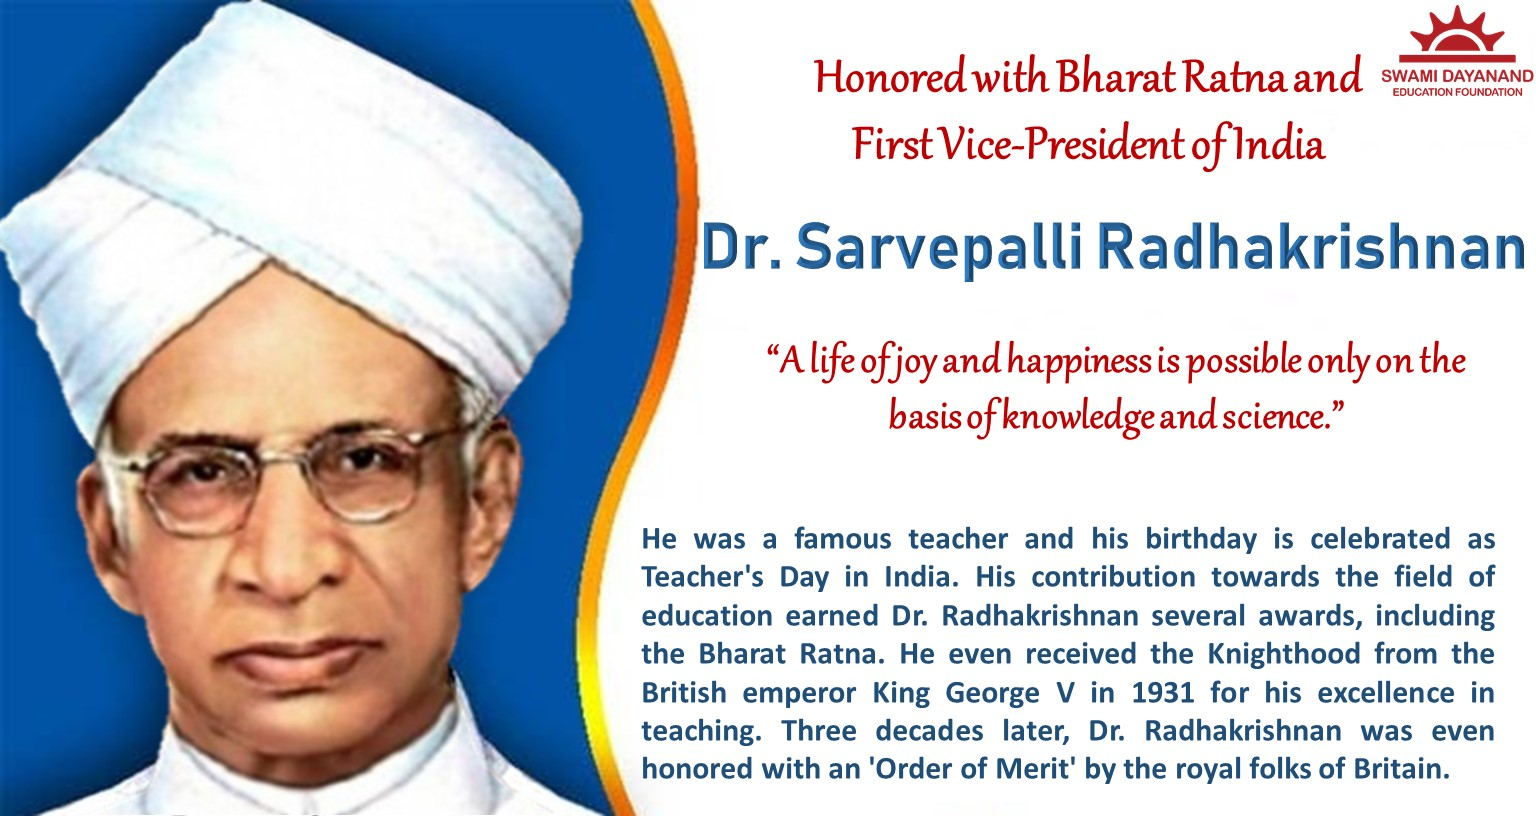 DR. SARVEPALLI RADHAKRISHNAN  (5TH SEPTEMBER 1888)